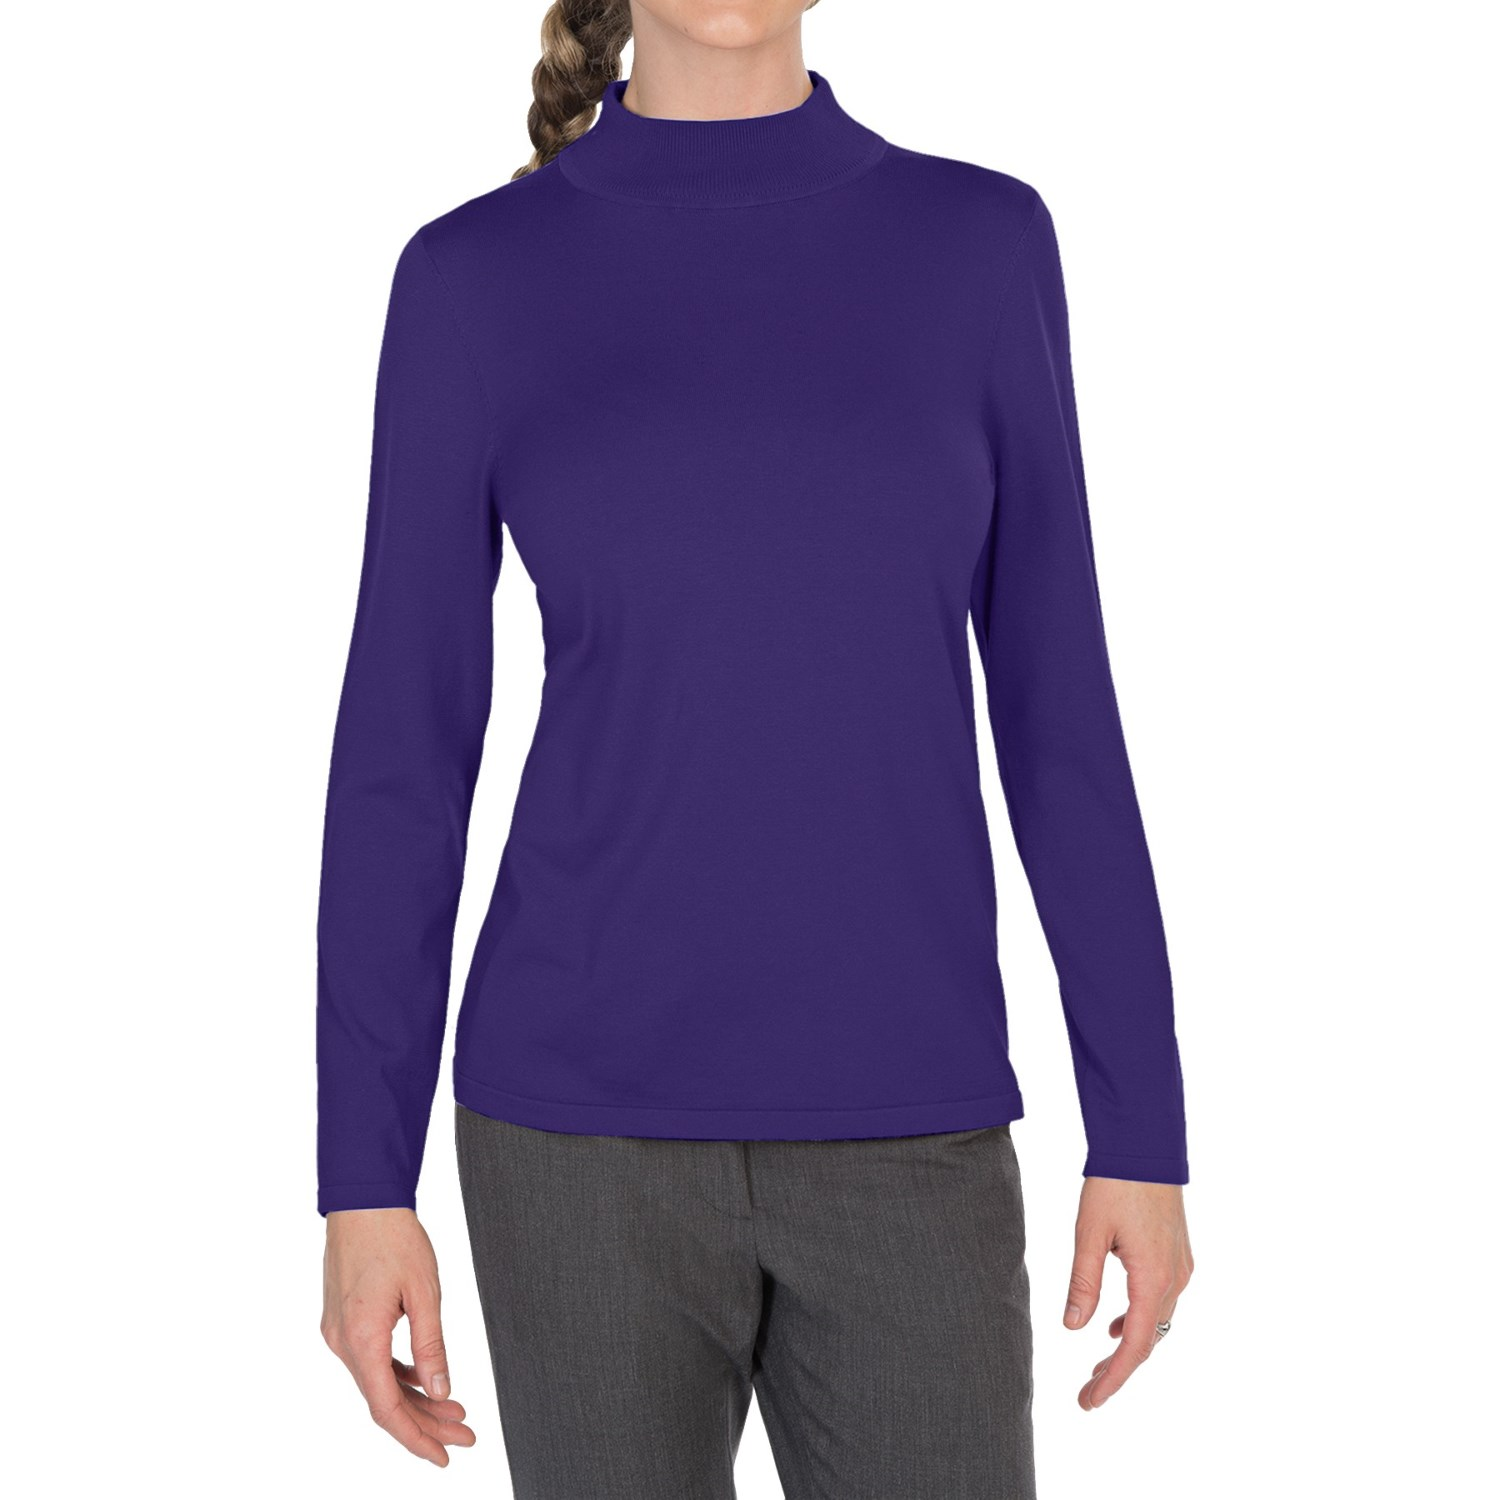 % Silk Heavy Weight Womens Mock Turtleneck Half Sleeve Shirt Top Blouse Made from % Mulberry silk Knit Knit fabric, very stretchy to fit you body well,warm and comfortable Mock turtle neck and half length sleeve.